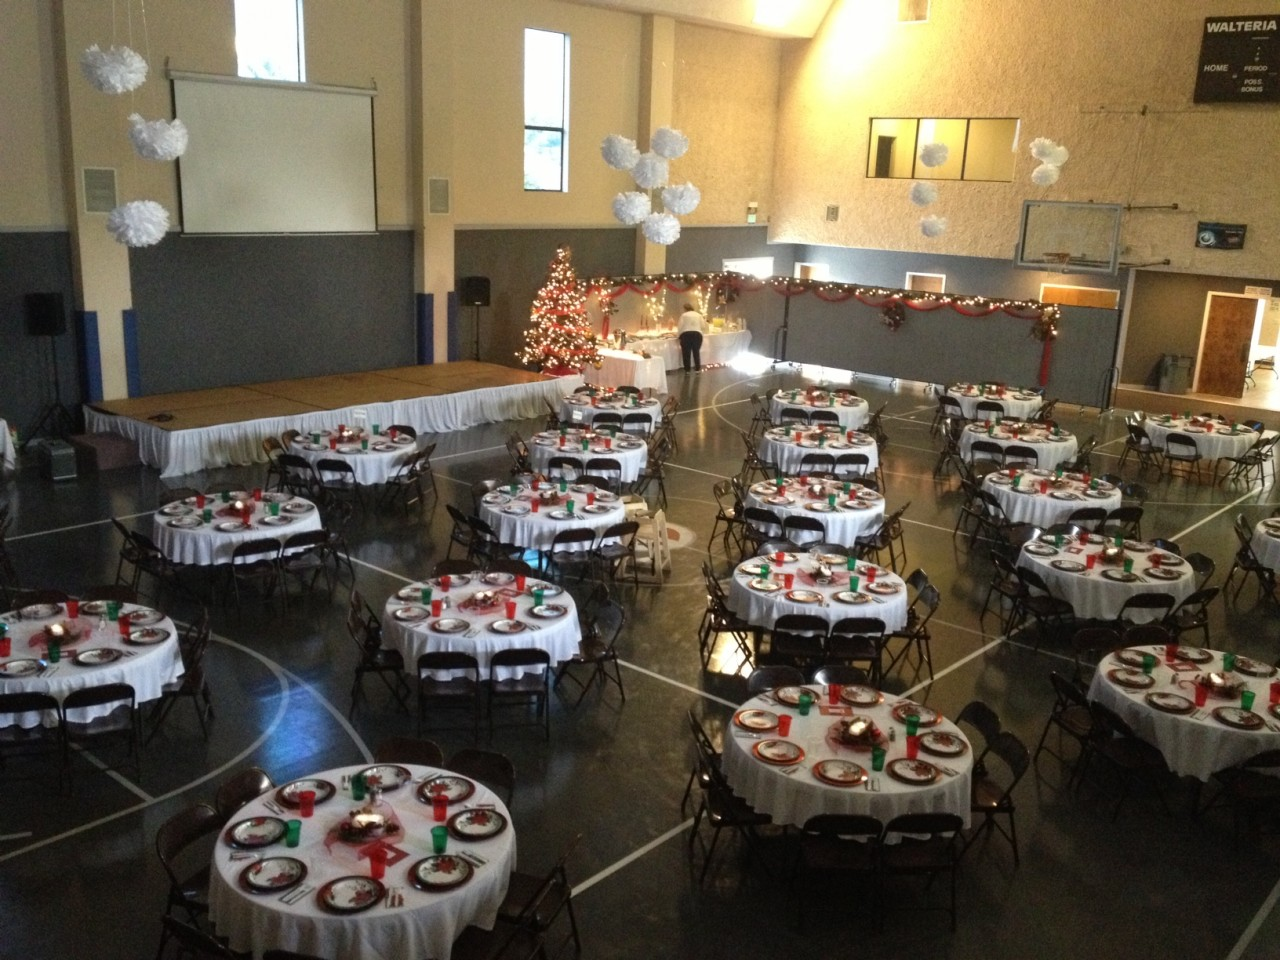 Women's Christmas banquet in a church gym